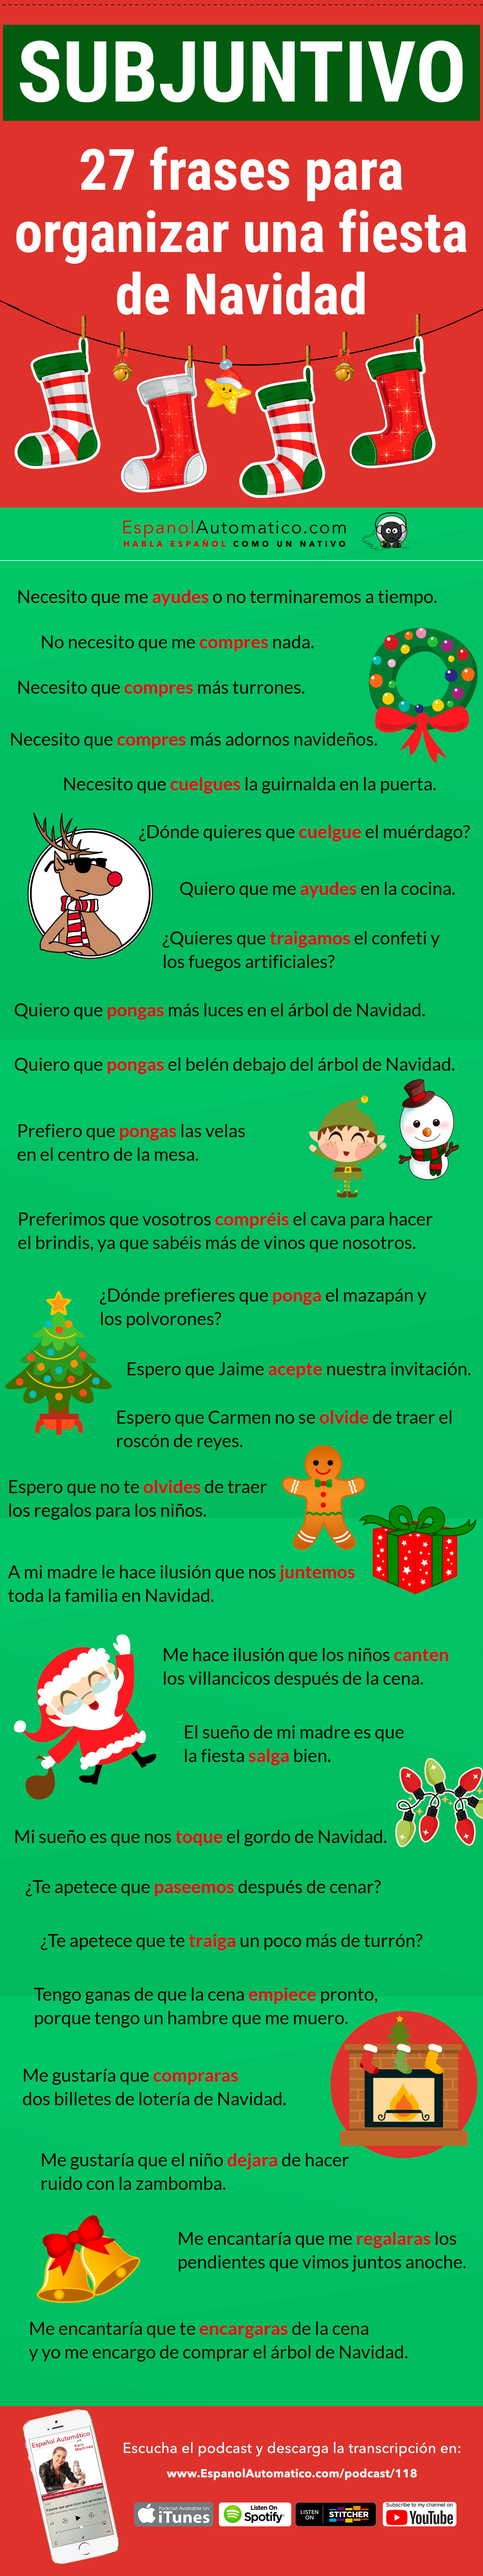 SUBJUNTIVO: 27 frases para organizar una fiesta de Navidad (B1) [Podcast 118] Learn Spanish in fun and easy way with our award-winning podcast: http://espanolautomatico.com/podcast/118 REPIN for later #teachspanish #spanishteacher #speakspanish #spanishlessons #learnspanishforadults #learnspanishforadultsfree #learningspanish #learningspanishlanguage #spanish #subjunctive #elsubjuntivo